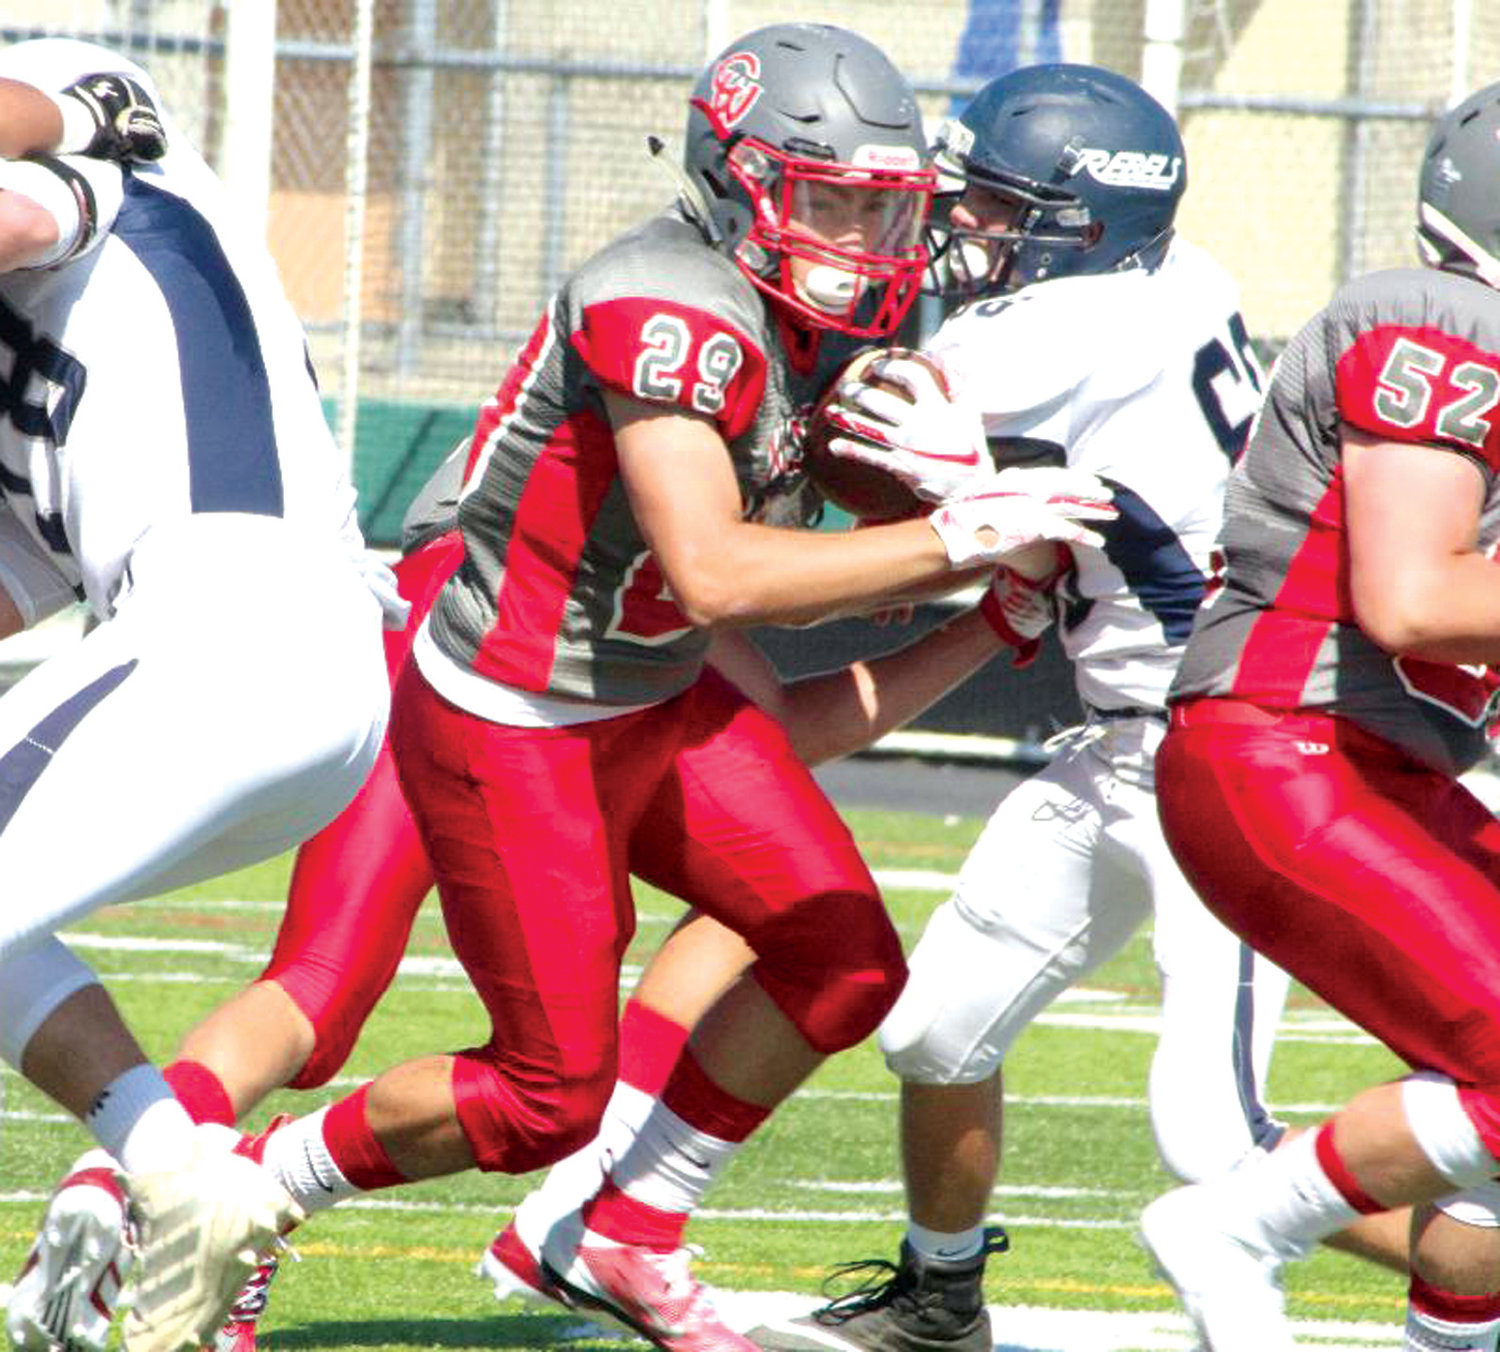 UP THE GUT: West's Brennan Stetson picks up some yards.